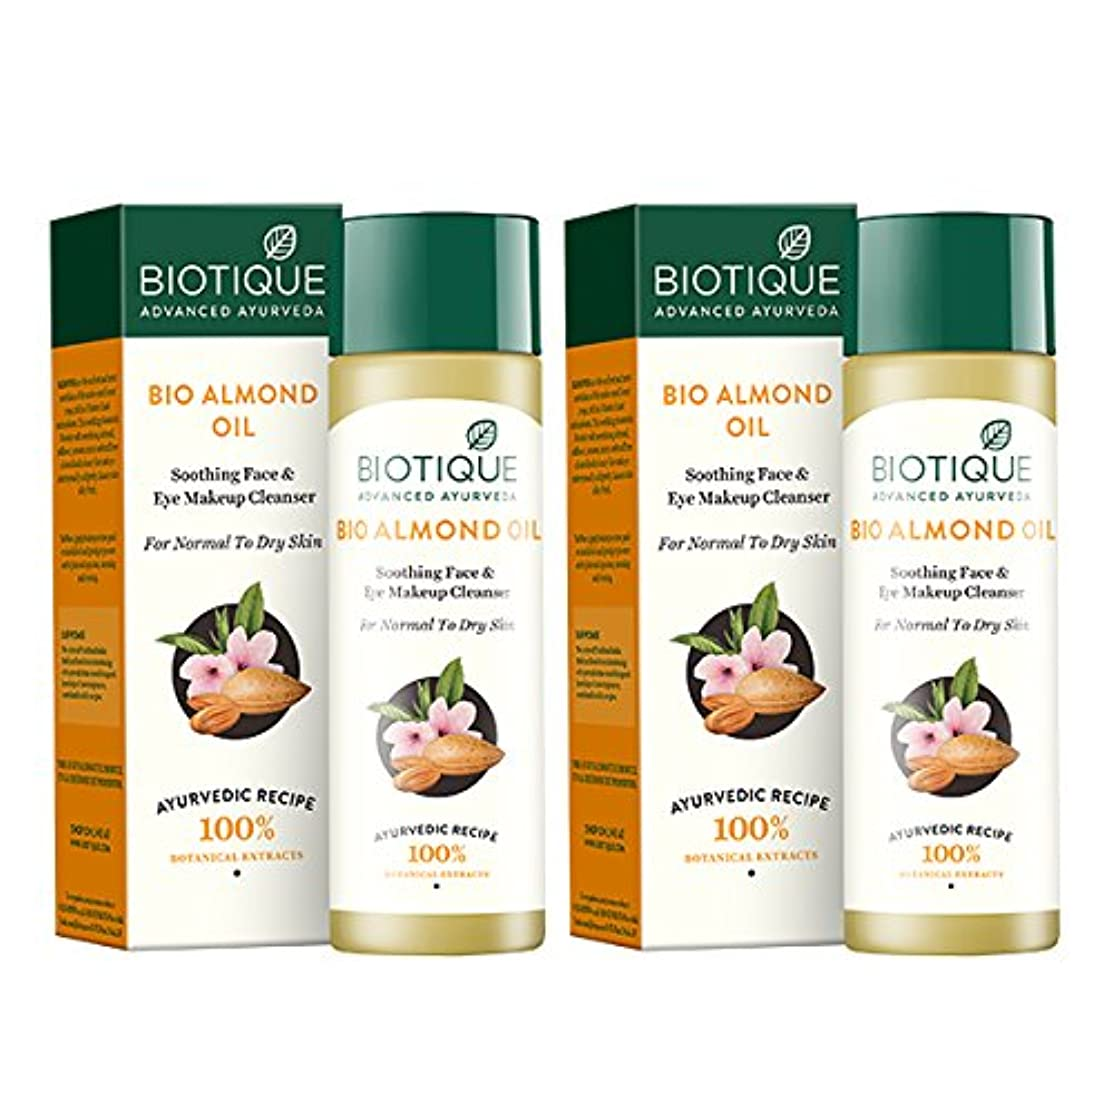 継承ラジウムニコチンBiotique Bio Almond Oil Soothing Face and Eye Makeup Cleanser for Normal To Dry Skin, 120ml (Pack of 2)